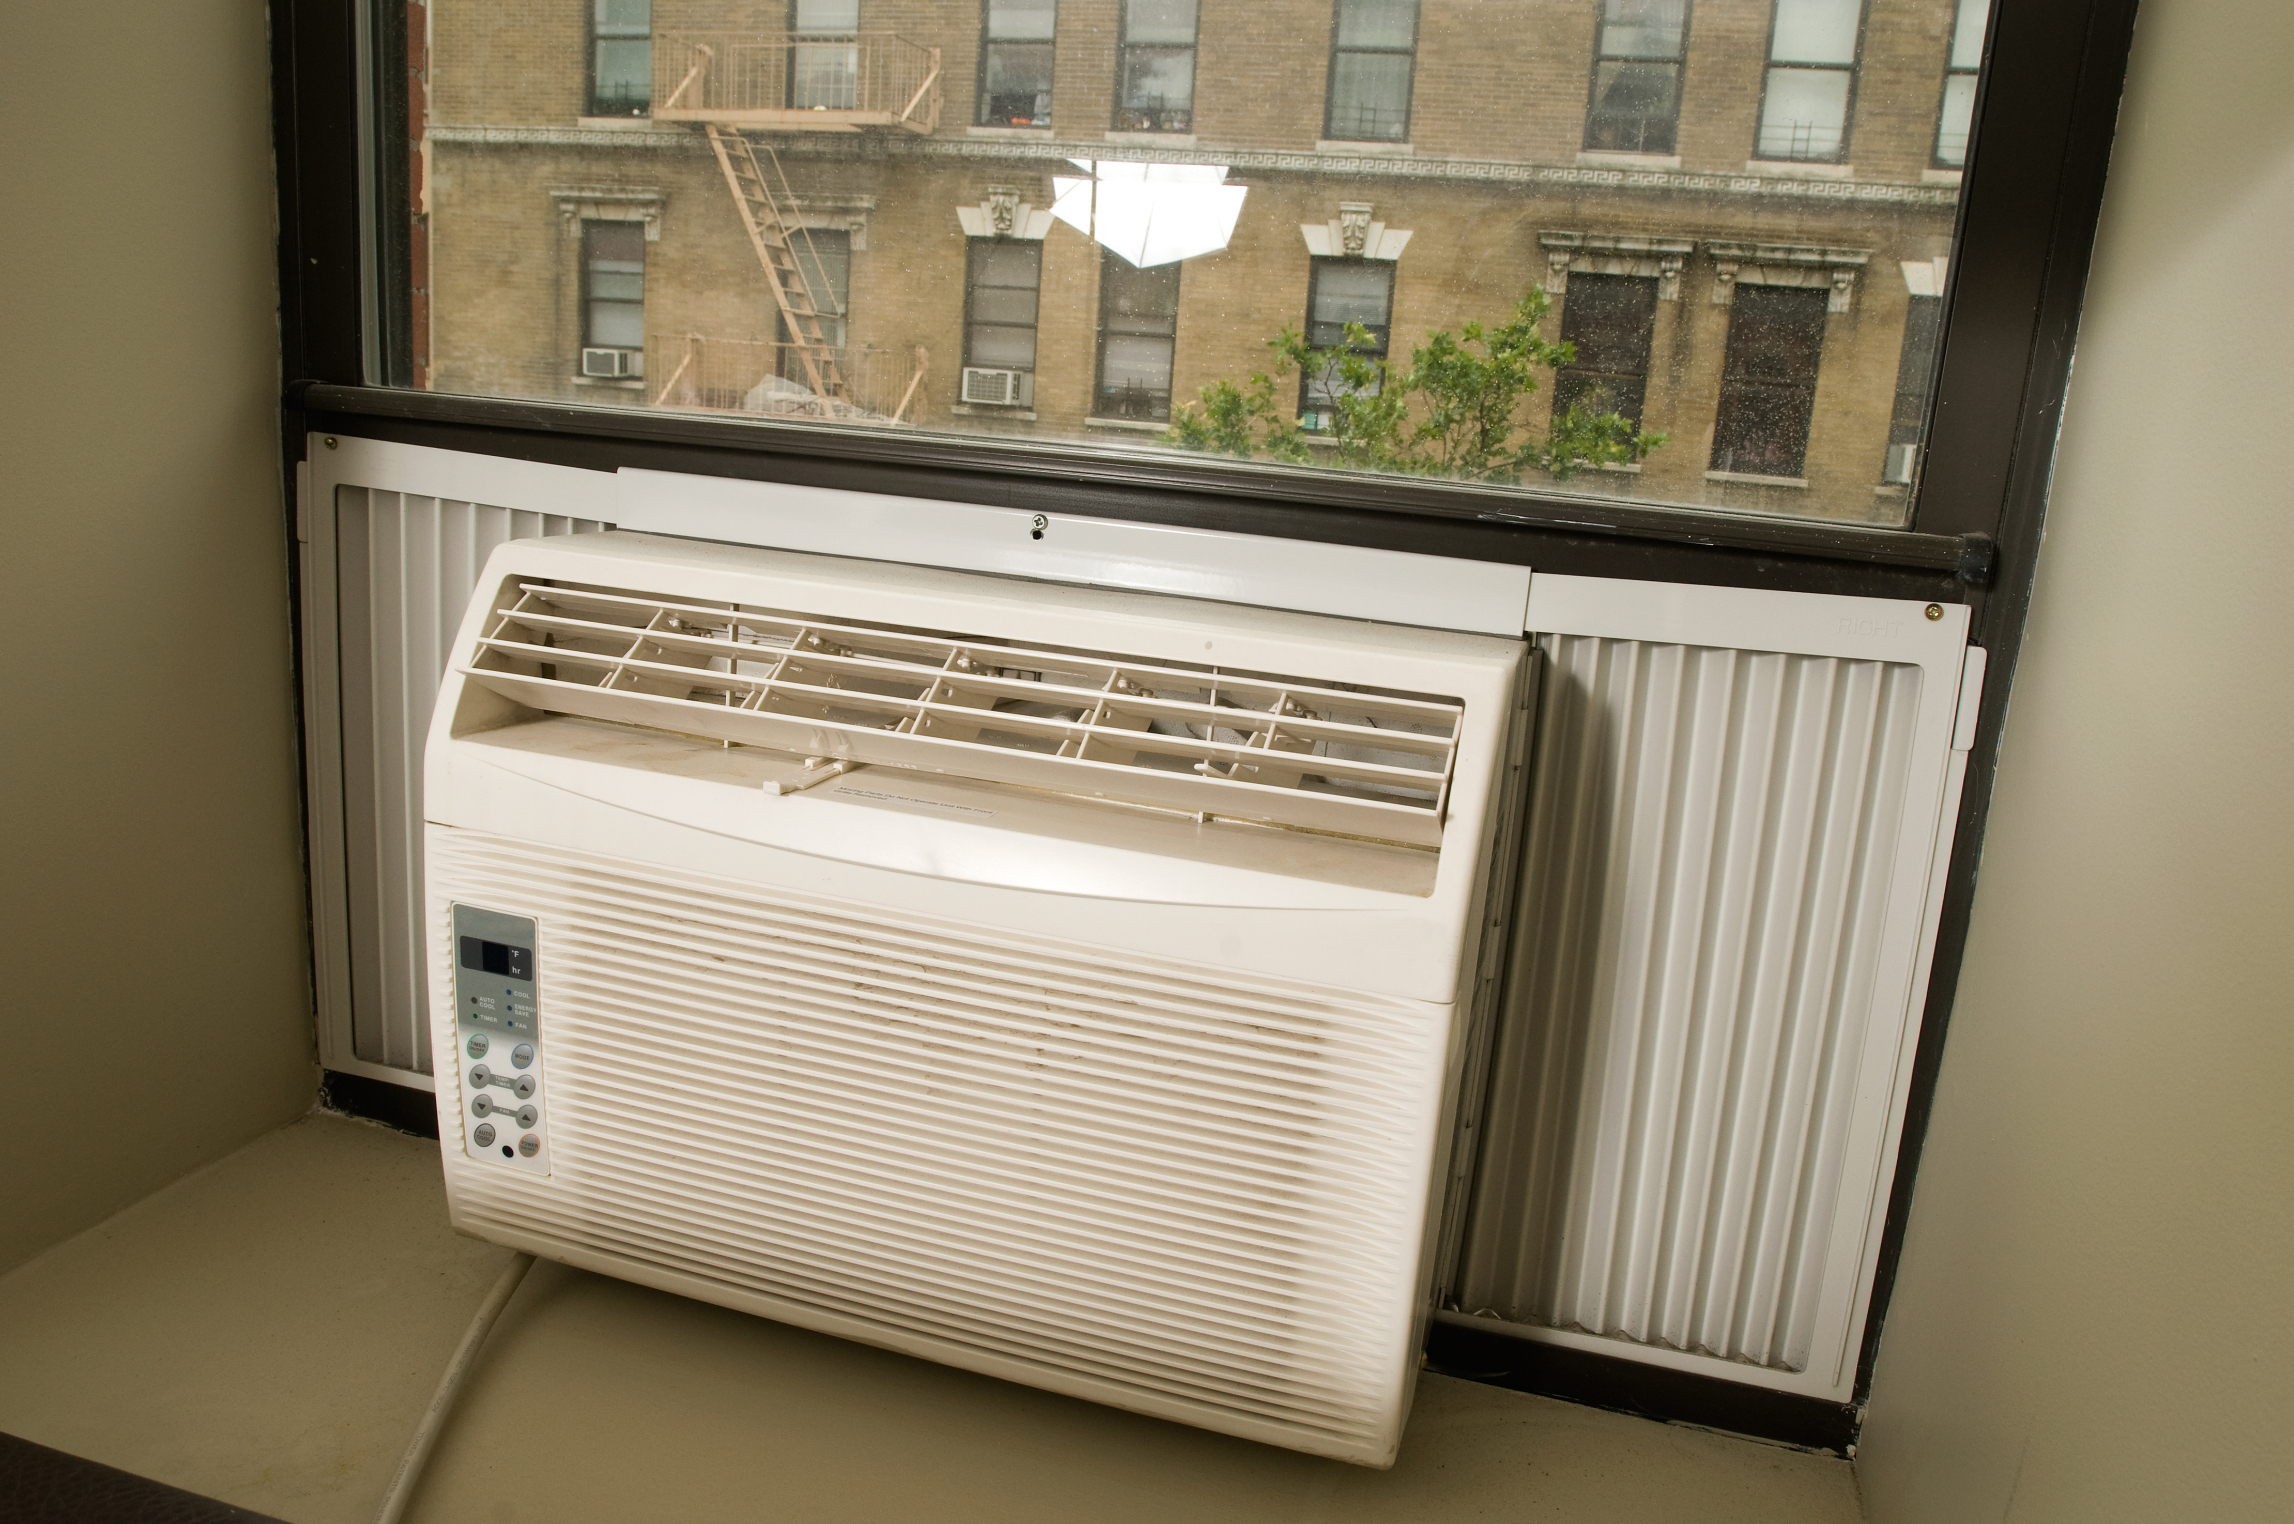 hampton bay window air conditioner mitsubishi do landlords have to supply air conditioning home guides sf gate